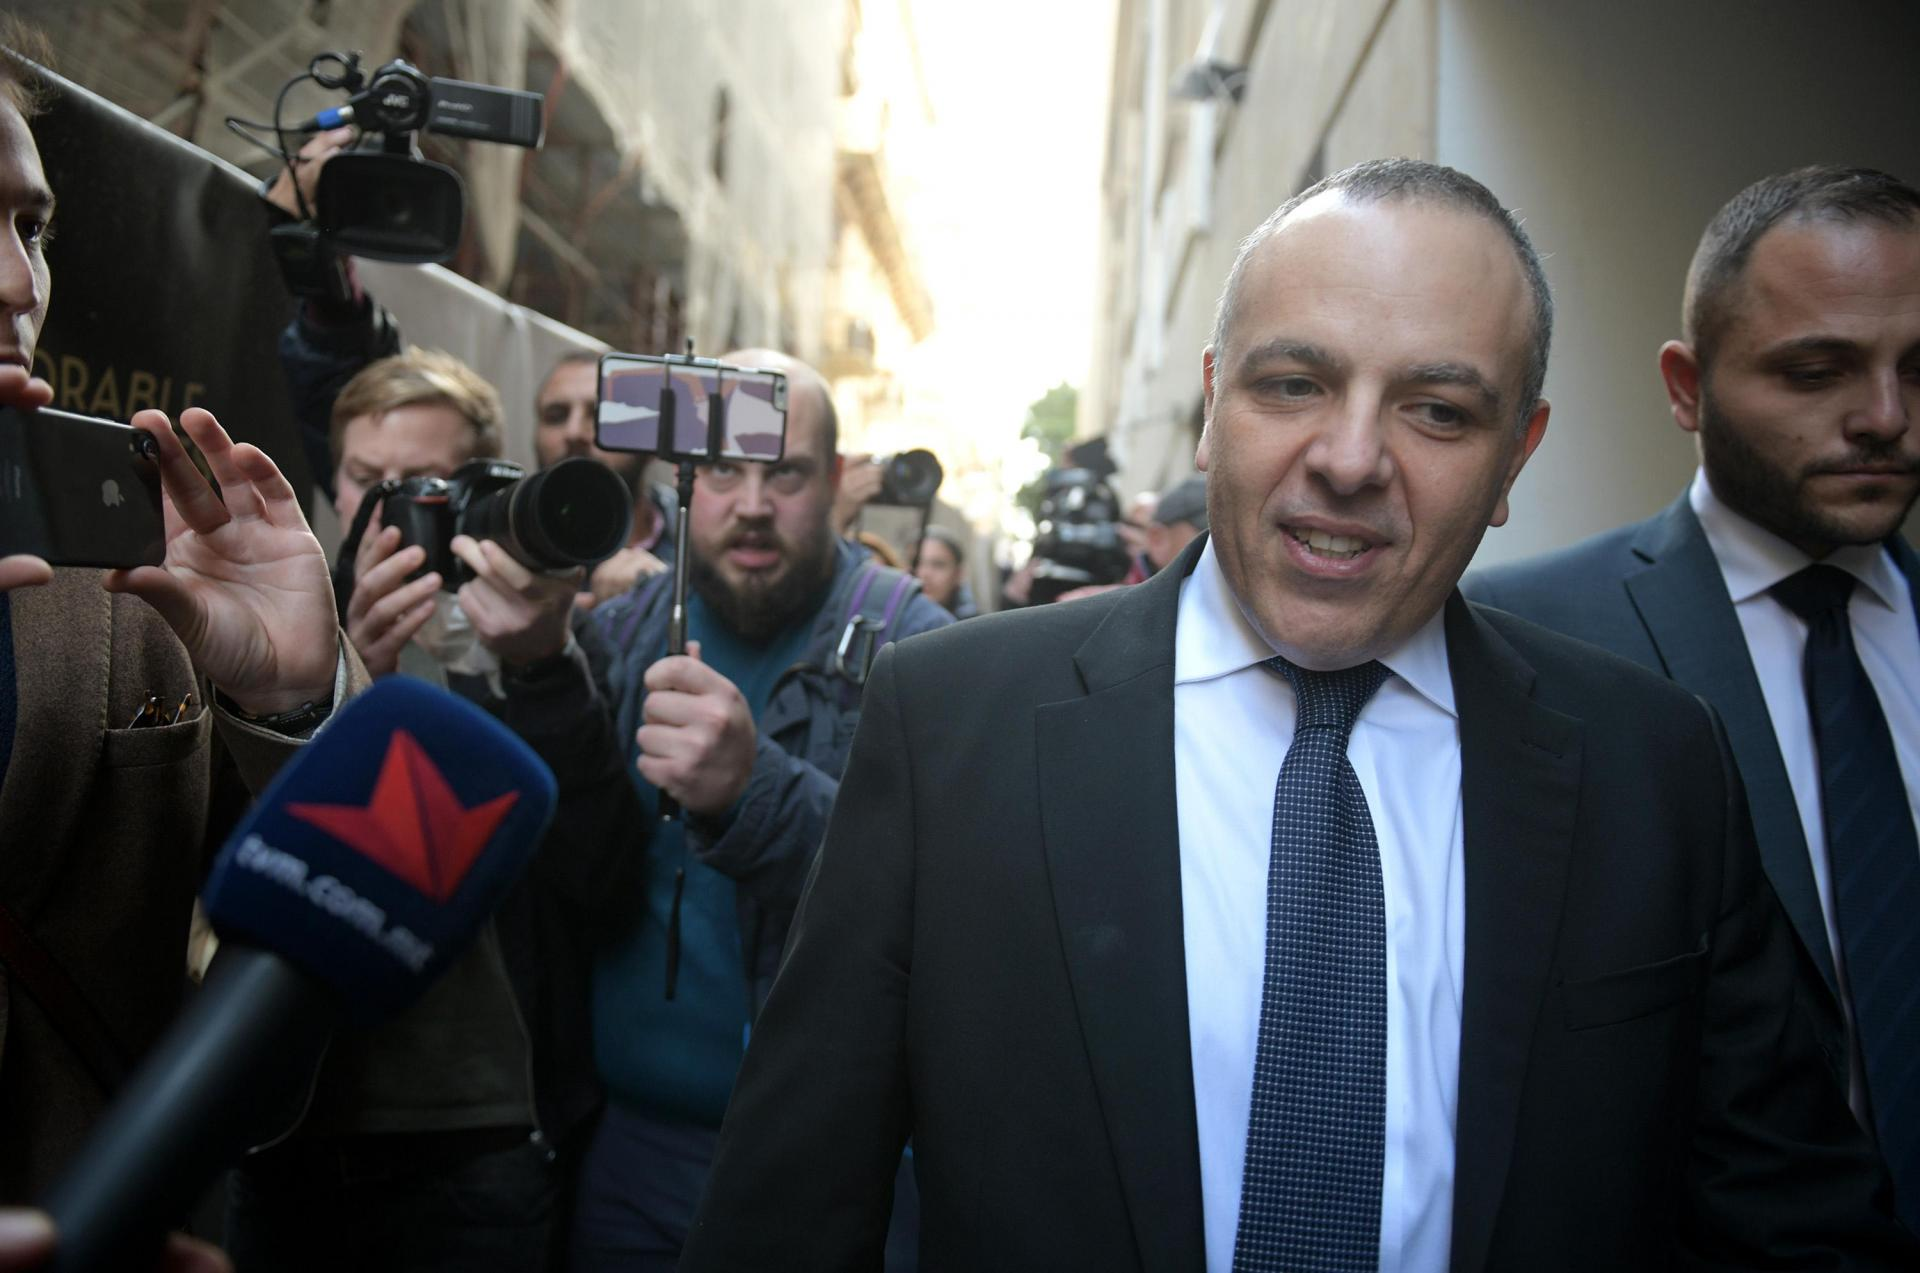 Keith Schembri leaving court on Wednesday.